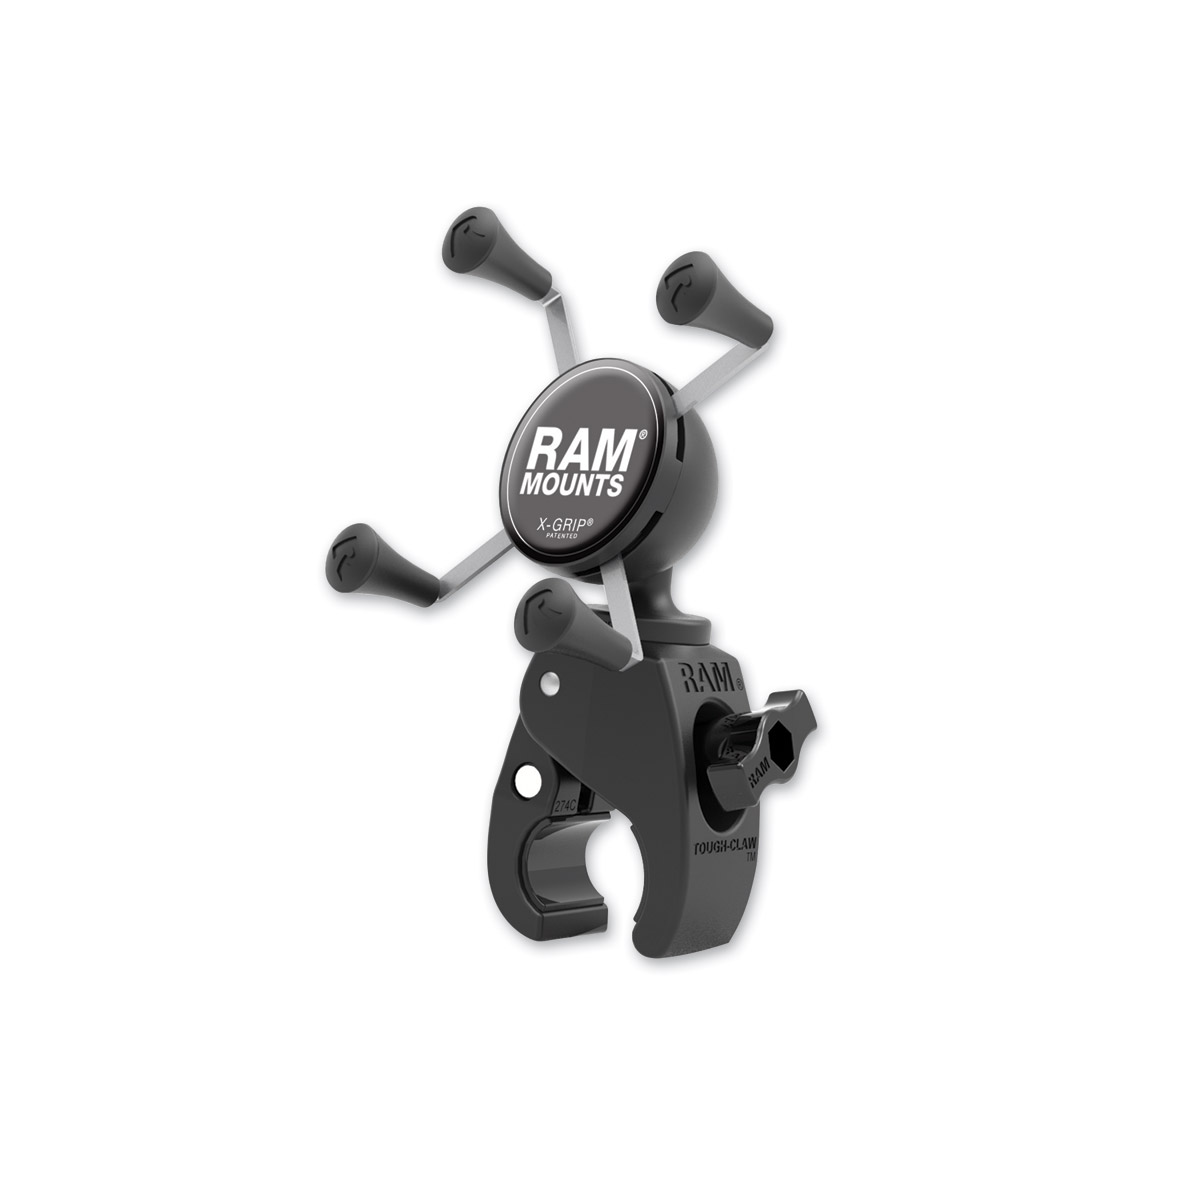 Ram Mount Tough-Claw Mount with Universal X-Grip Cradle for Small Phones